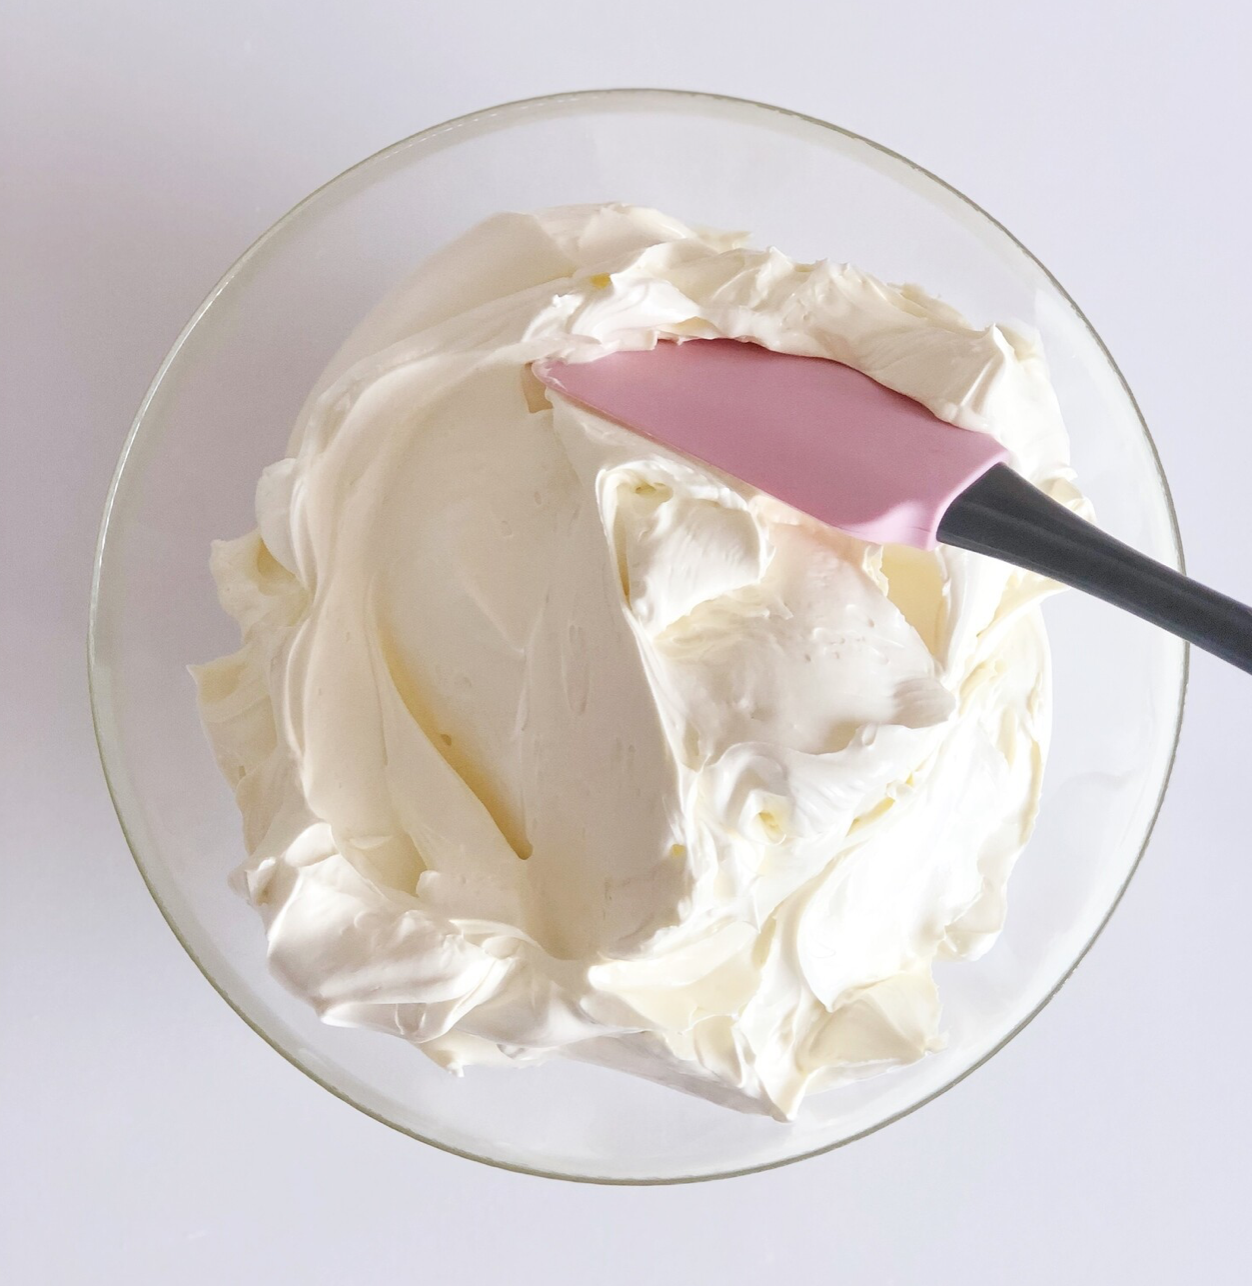 Our ULTIMATE Swiss Meringue Buttercream Recipe